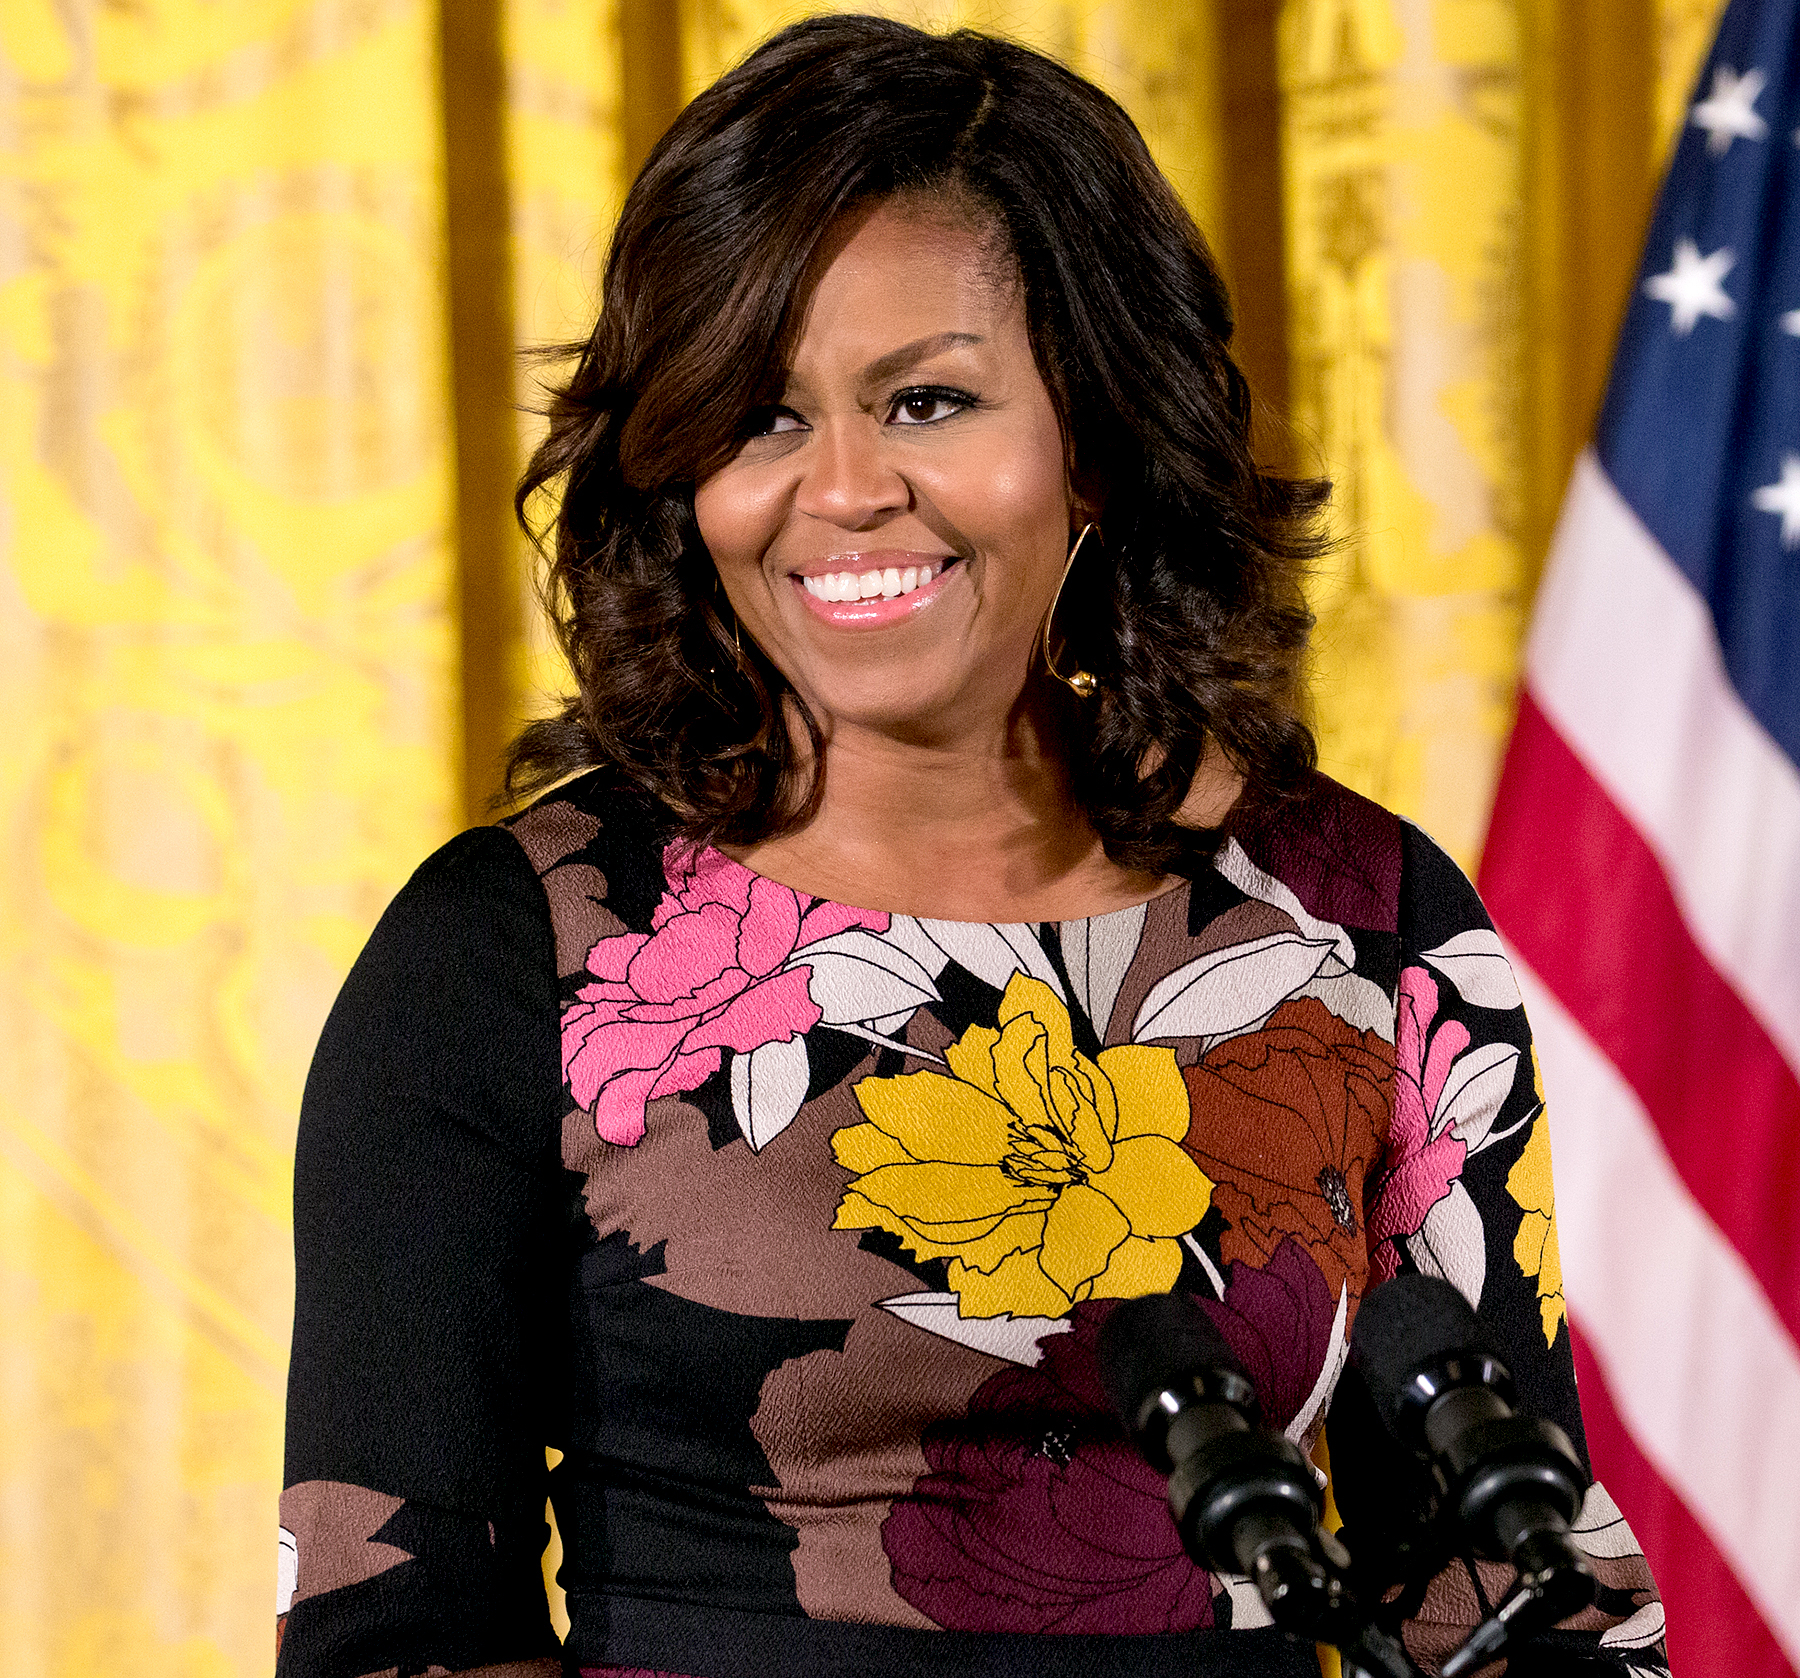 U.S. first lady Michelle Obama delivers opening remarks during the final Joining Forces event in the East Room of the White House, Nov. 14, 2016, in Washington, D.C. Obama hosted the event to celebrate the successes and share best practices so as to continue the work of the Mayors Challenge to End Veteran Homelessness.